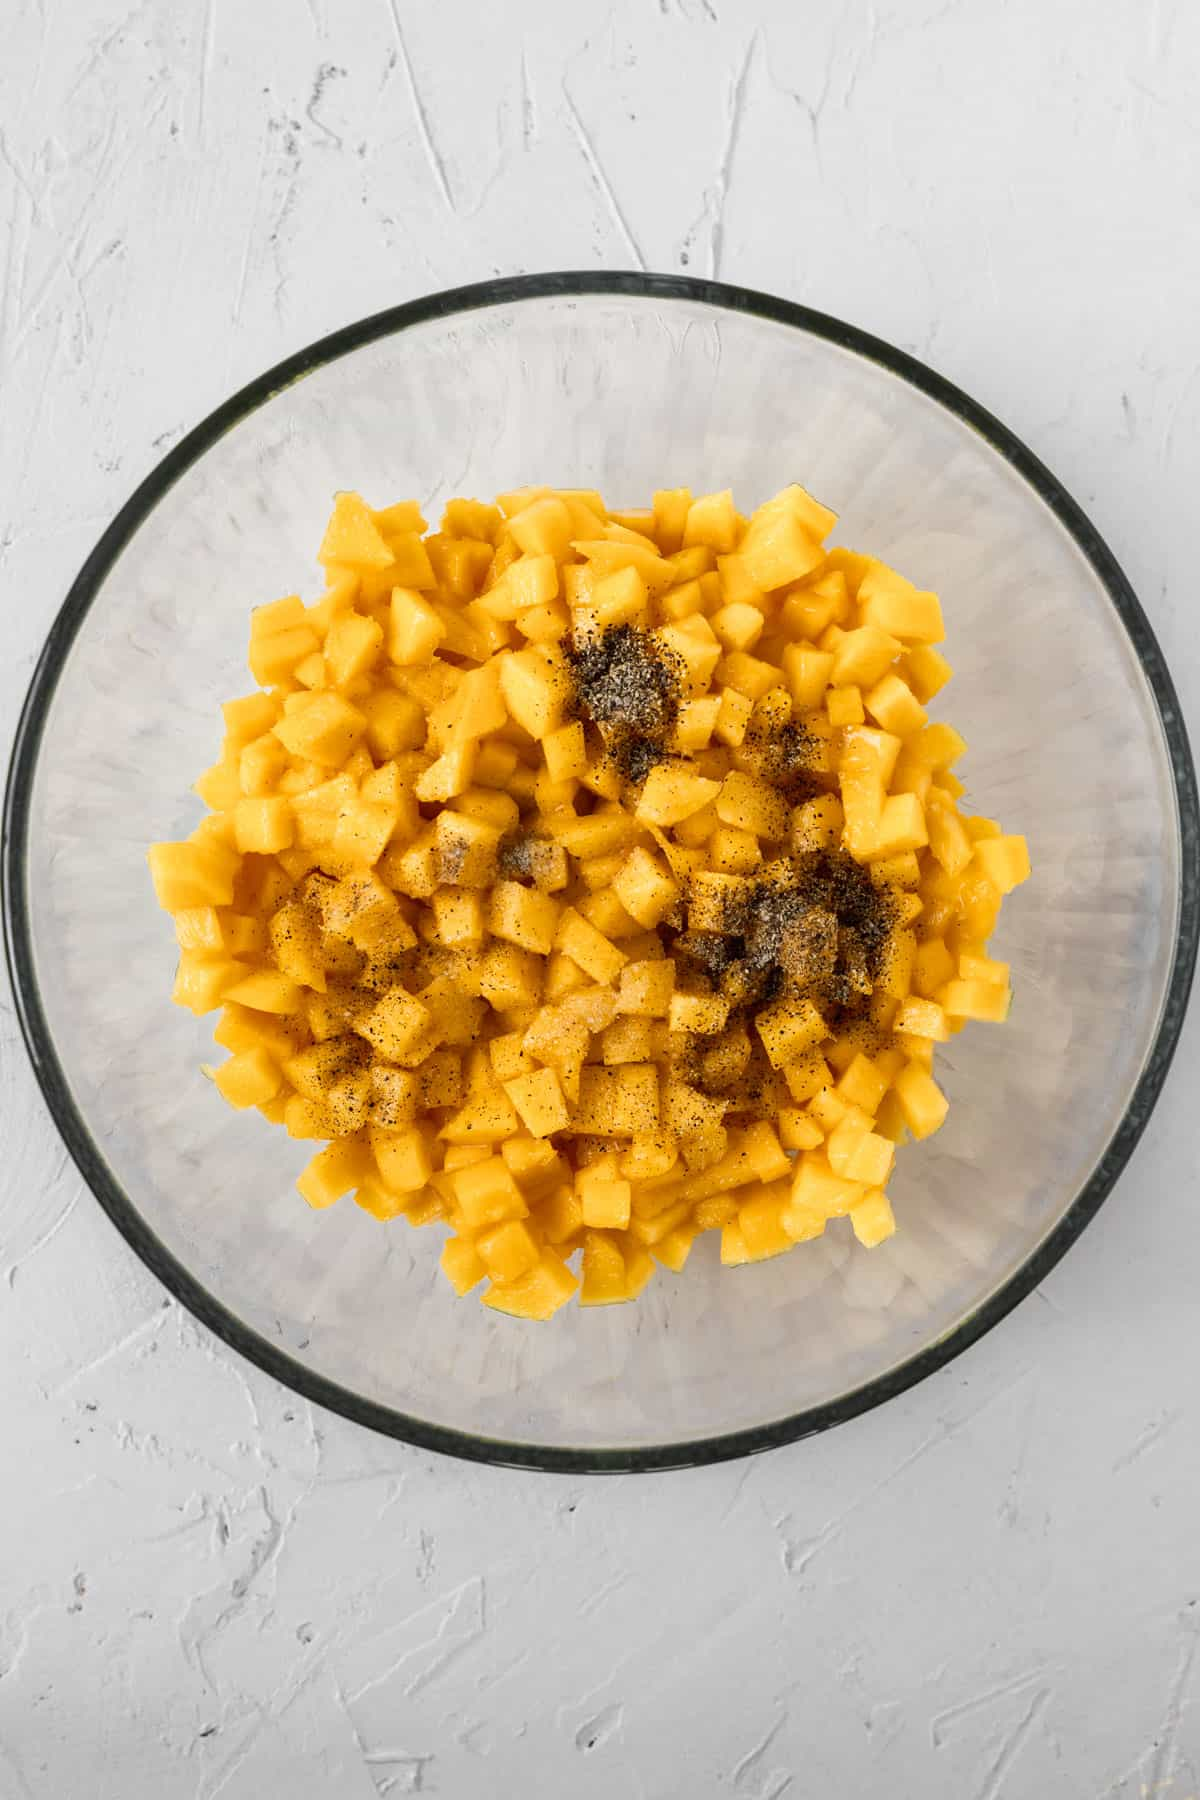 Cubed mango and seasonings in a glass bowl.